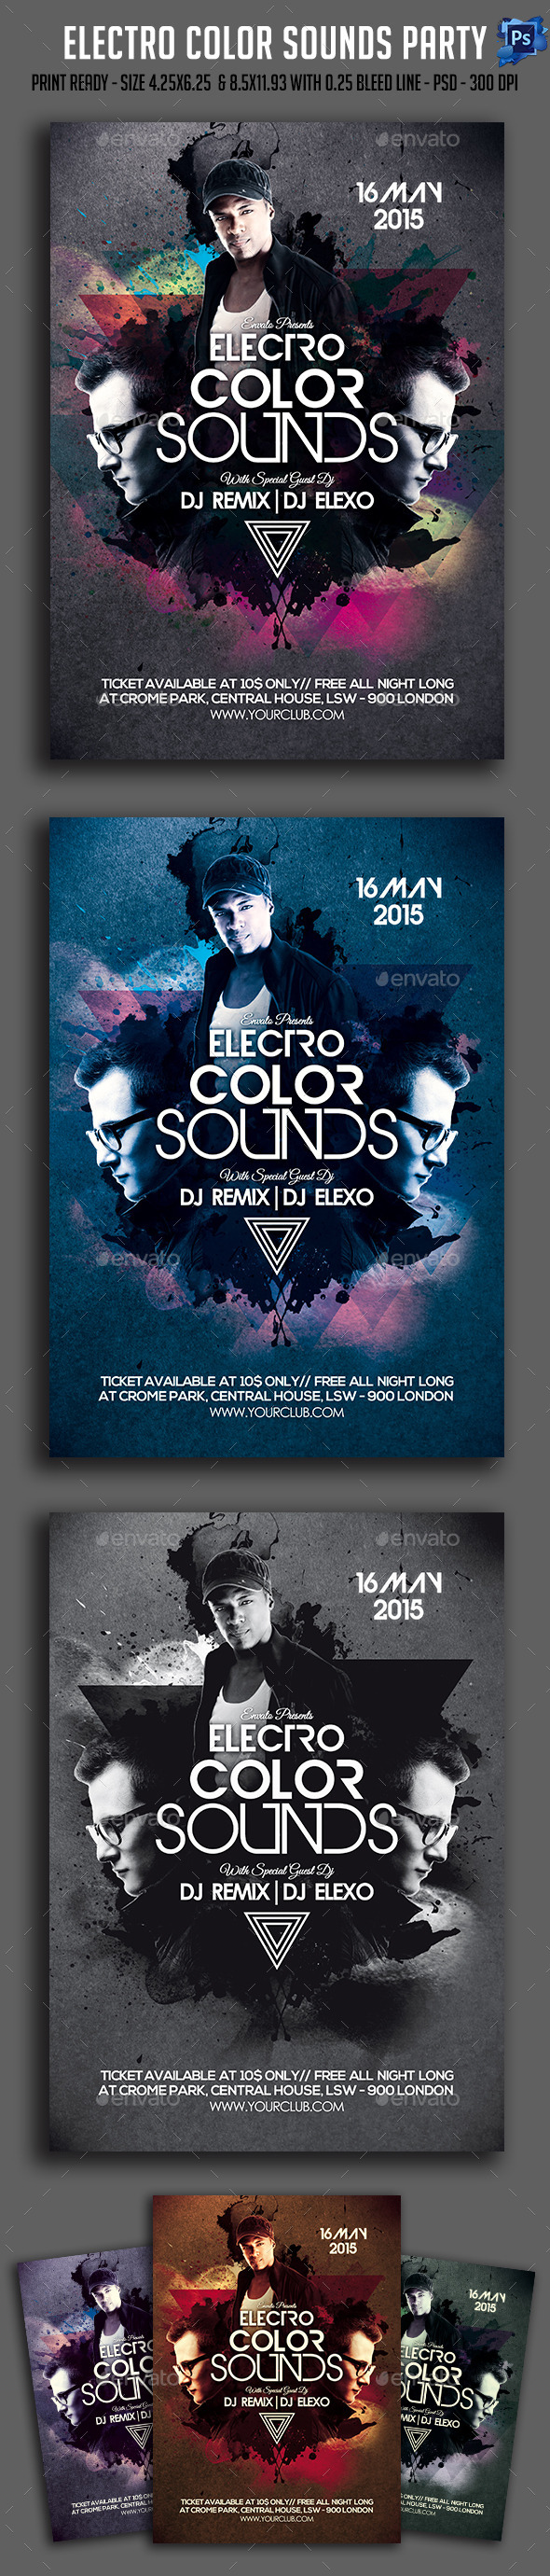 GraphicRiver Electro Color Sounds Party Flyer 11407941